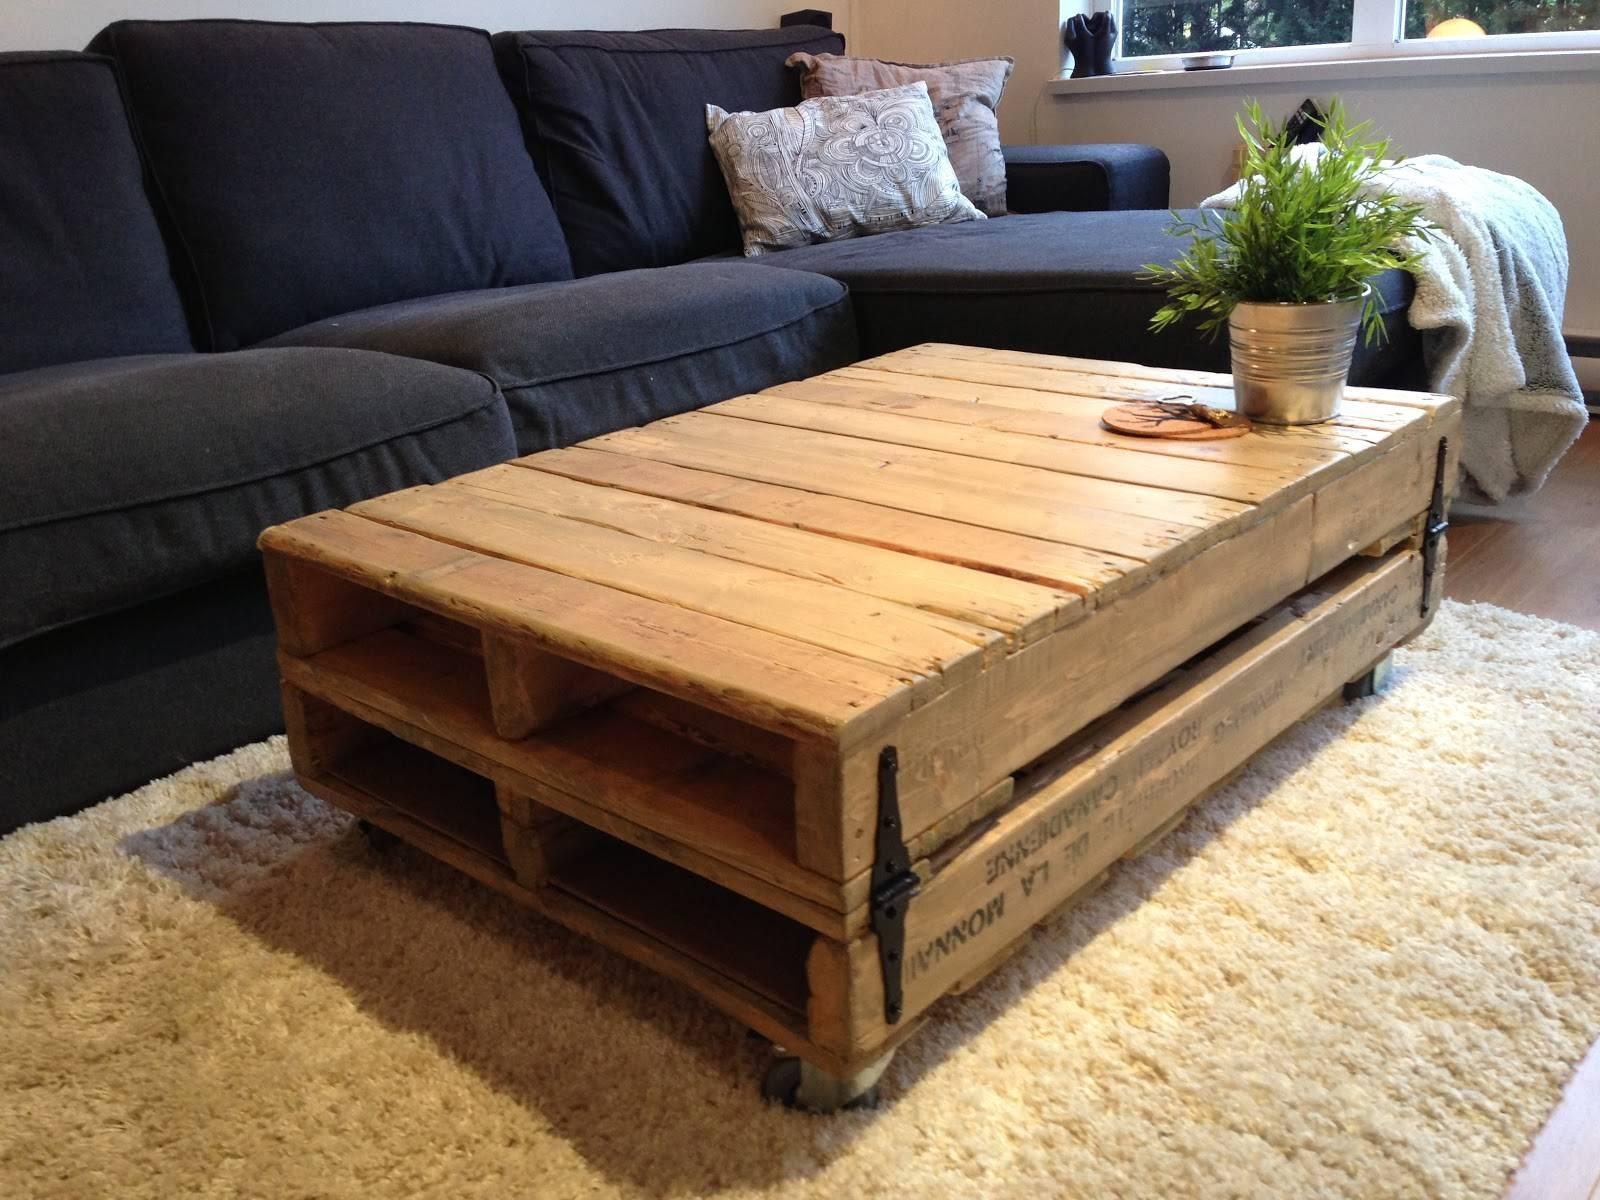 Popular Rustic Storage Coffee Table : Diy Secret Rustic Storage inside Rustic Storage Diy Coffee Tables (Image 21 of 30)